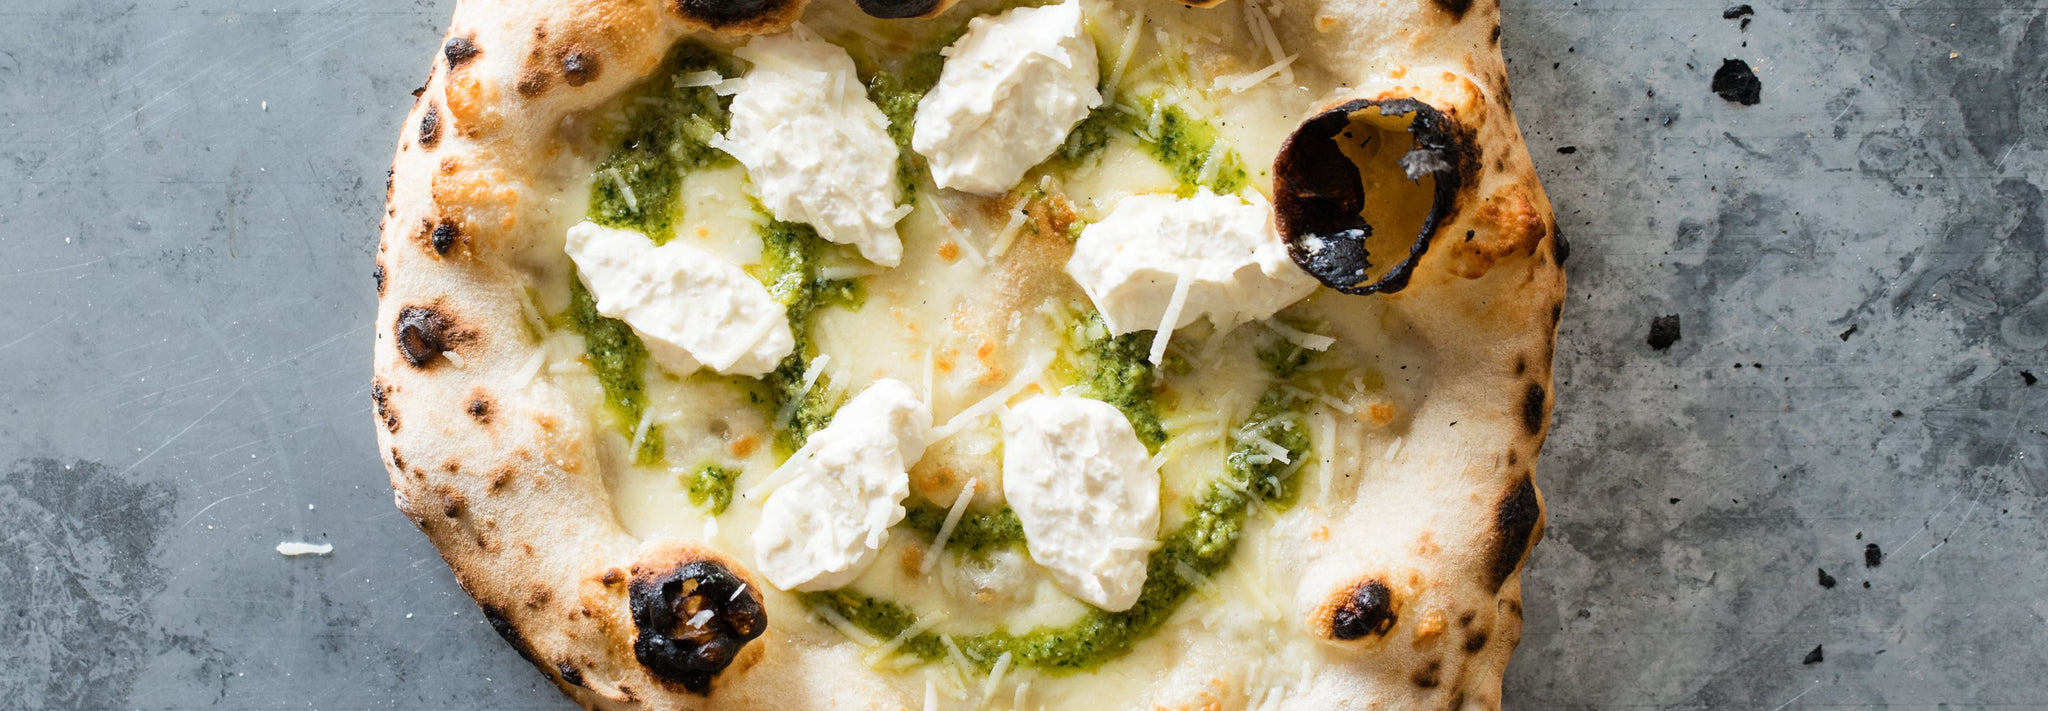 Jalapeno Pesto Pizza by Mike Fitzick